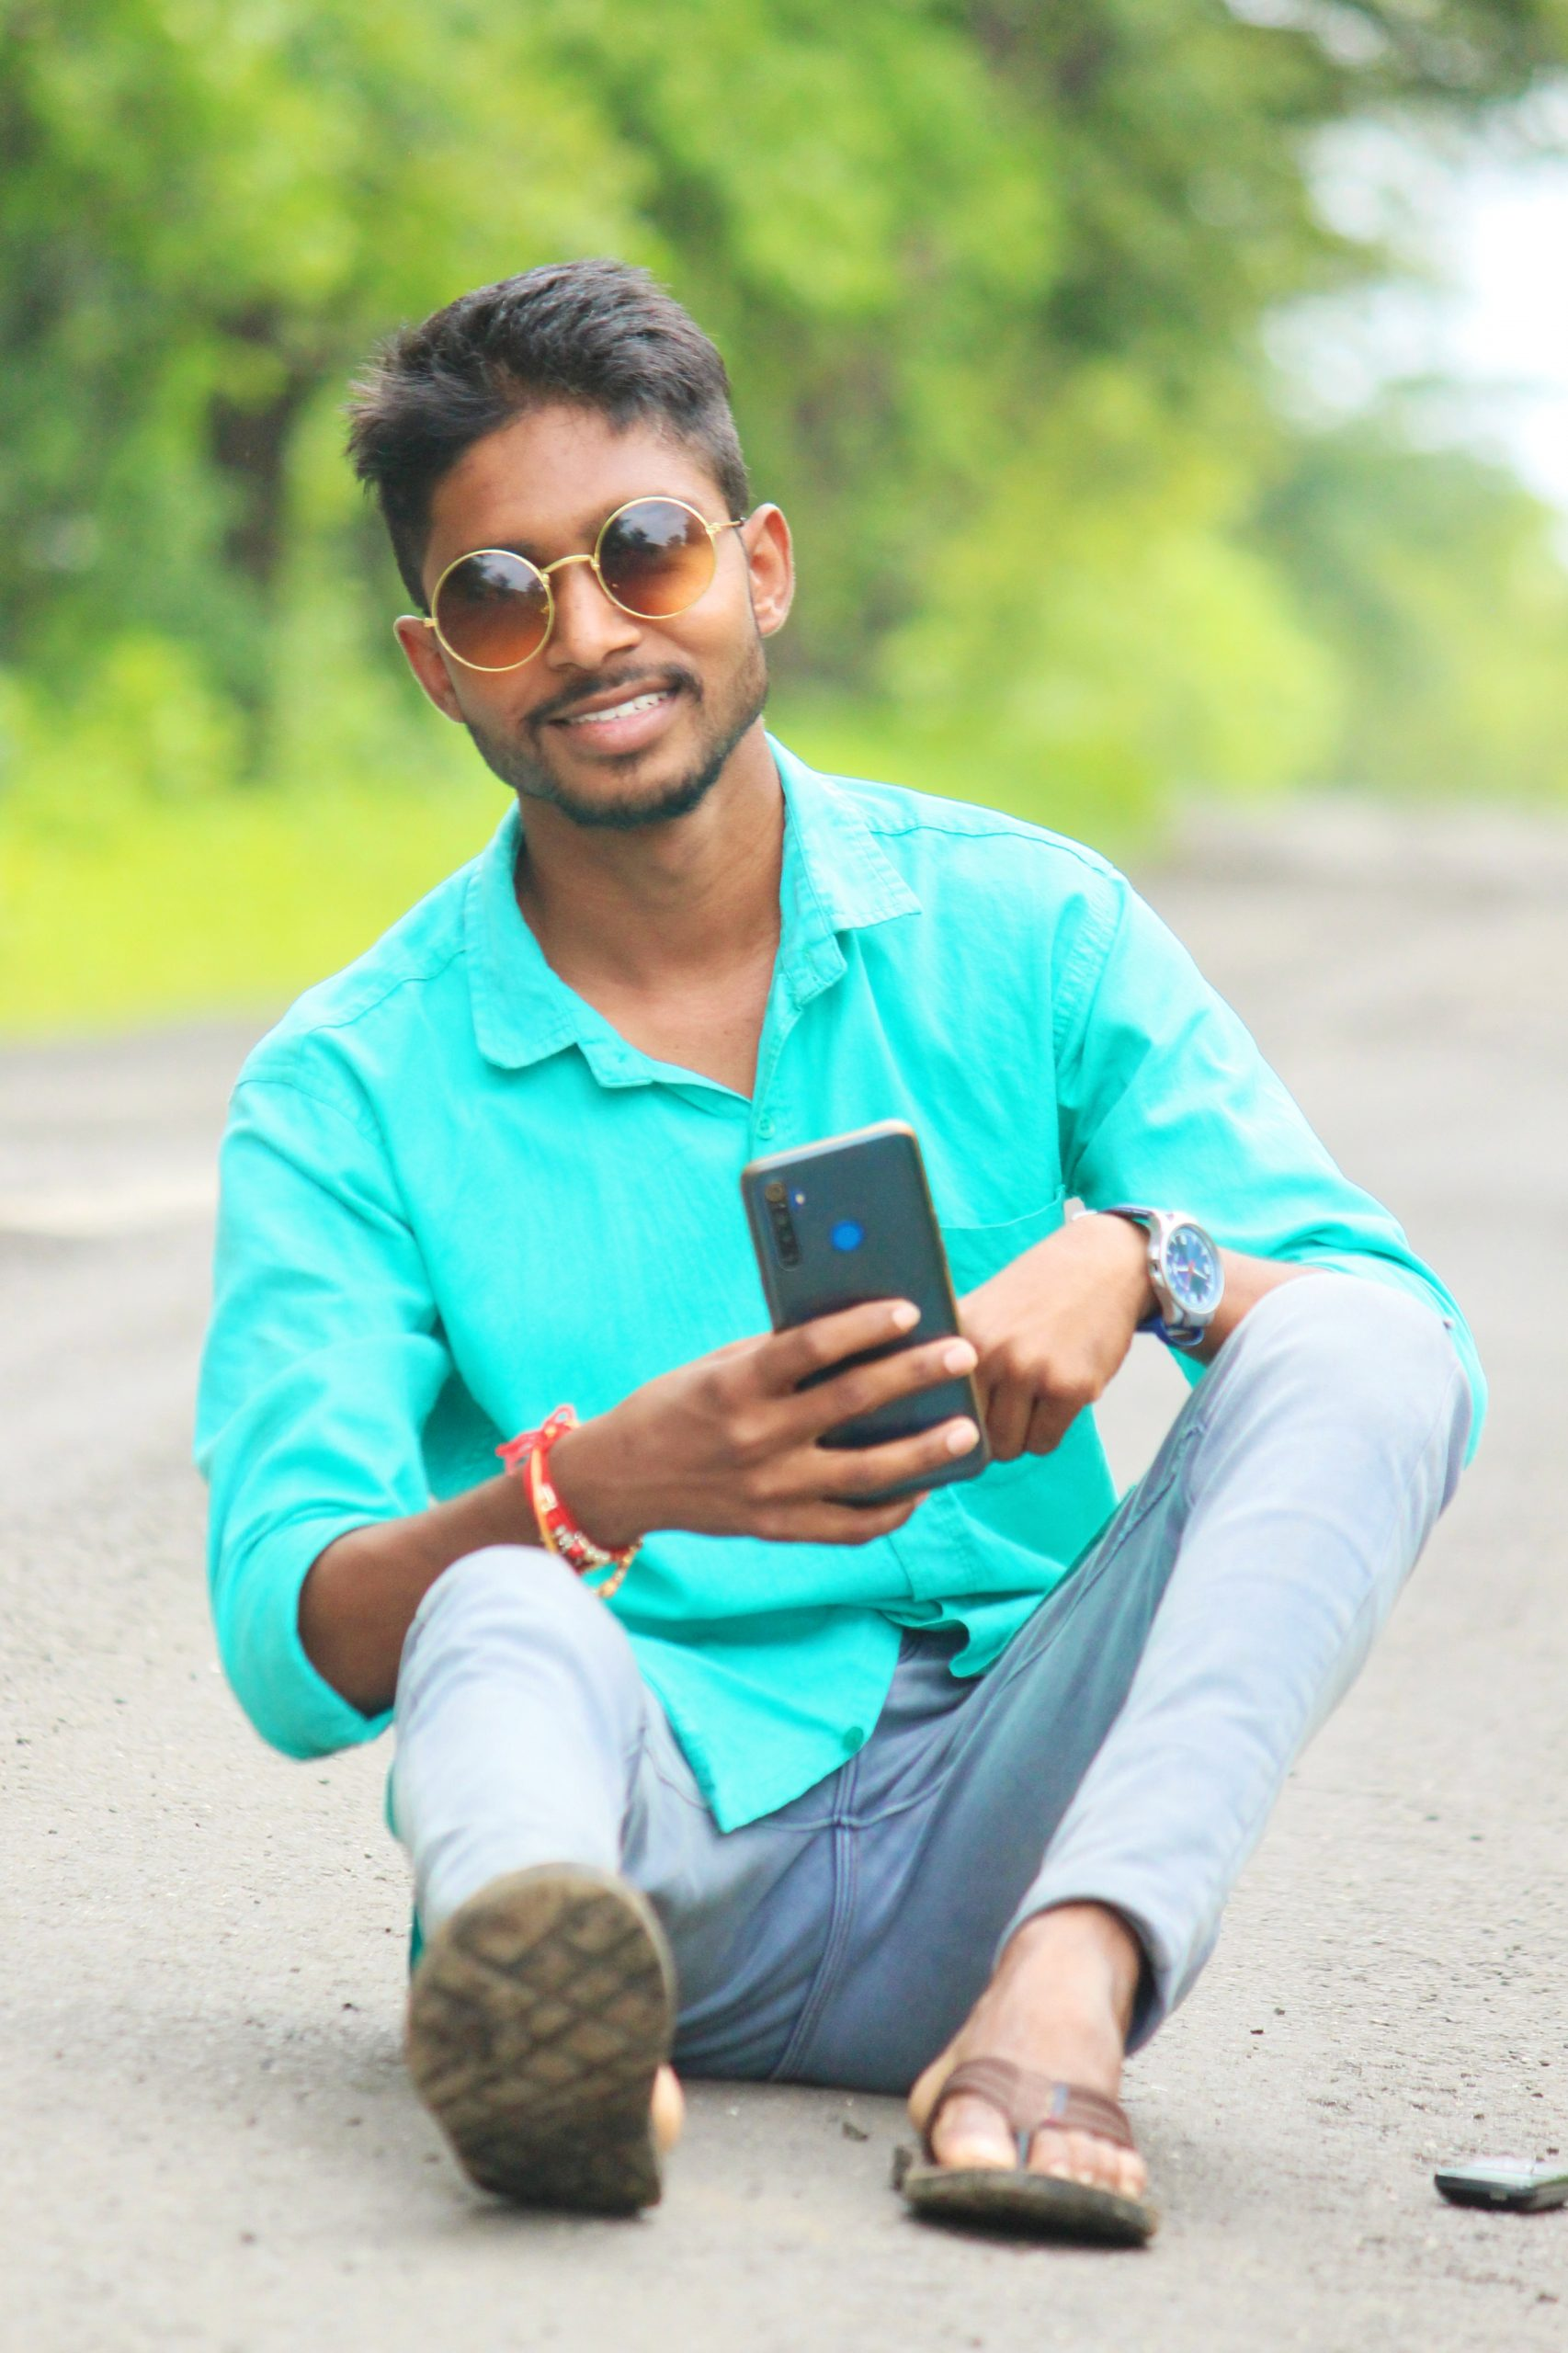 Model posing with cellphone on road